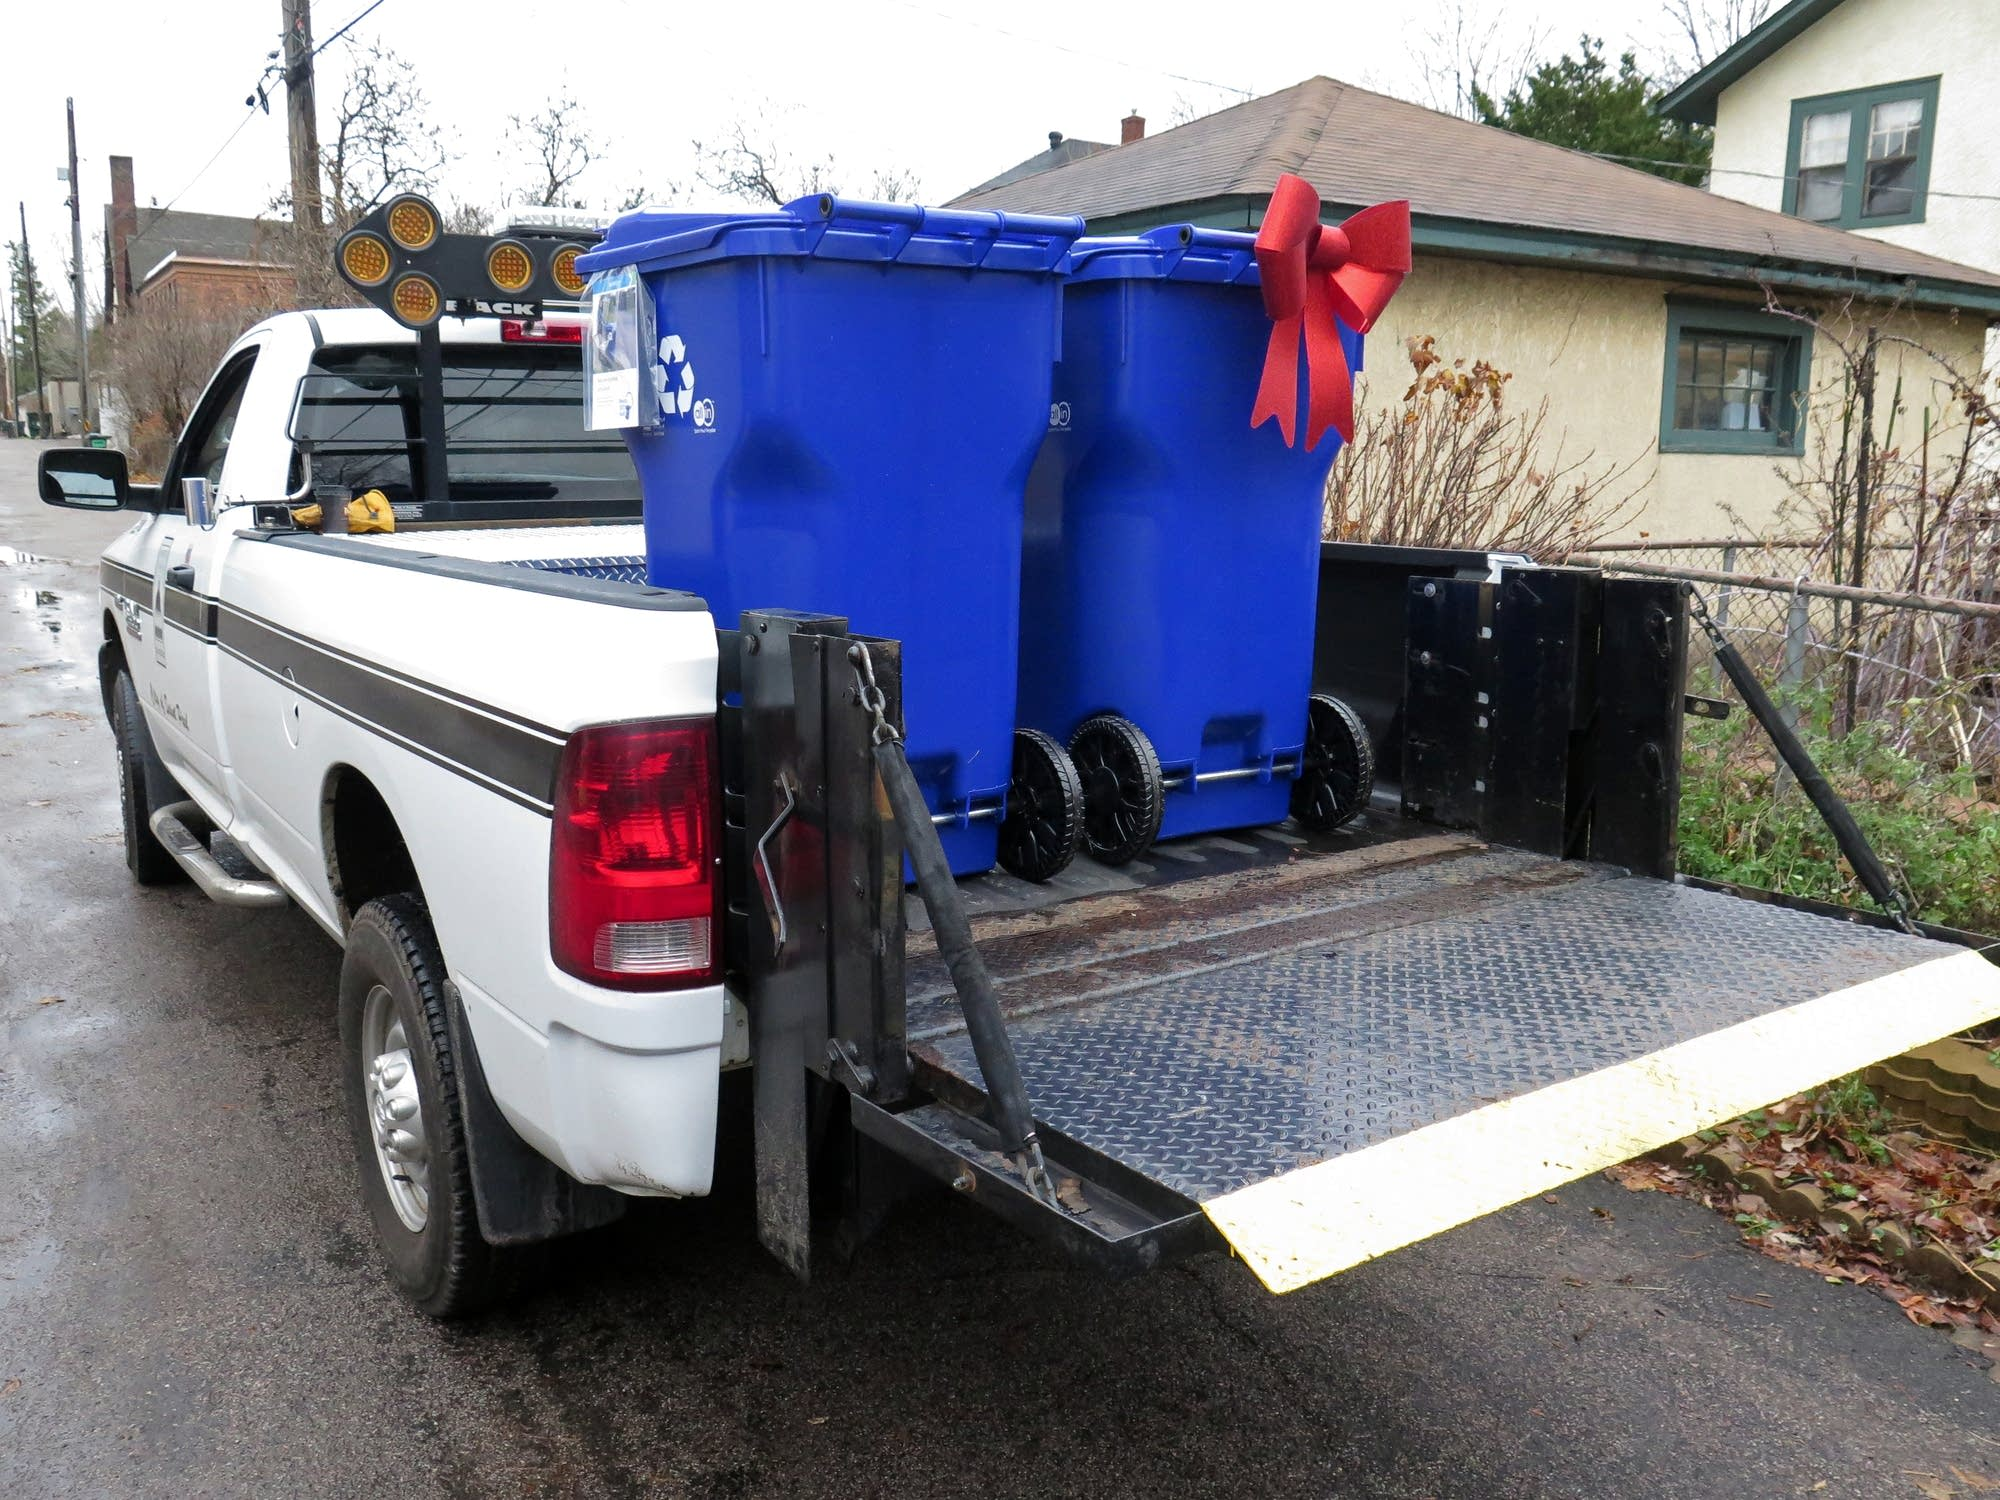 Recycling bins are headed for homes in St. Paul.